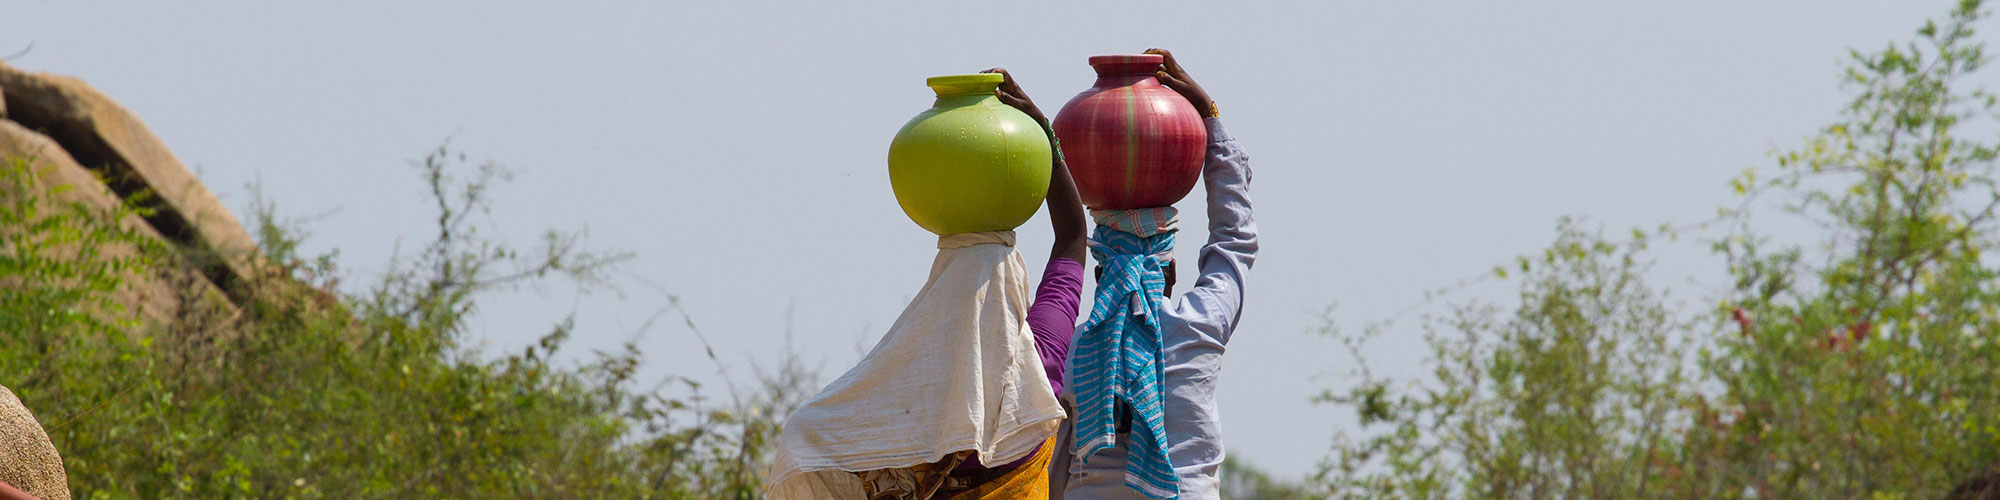 Kannada Ladies Carrying Green Red Pots Head